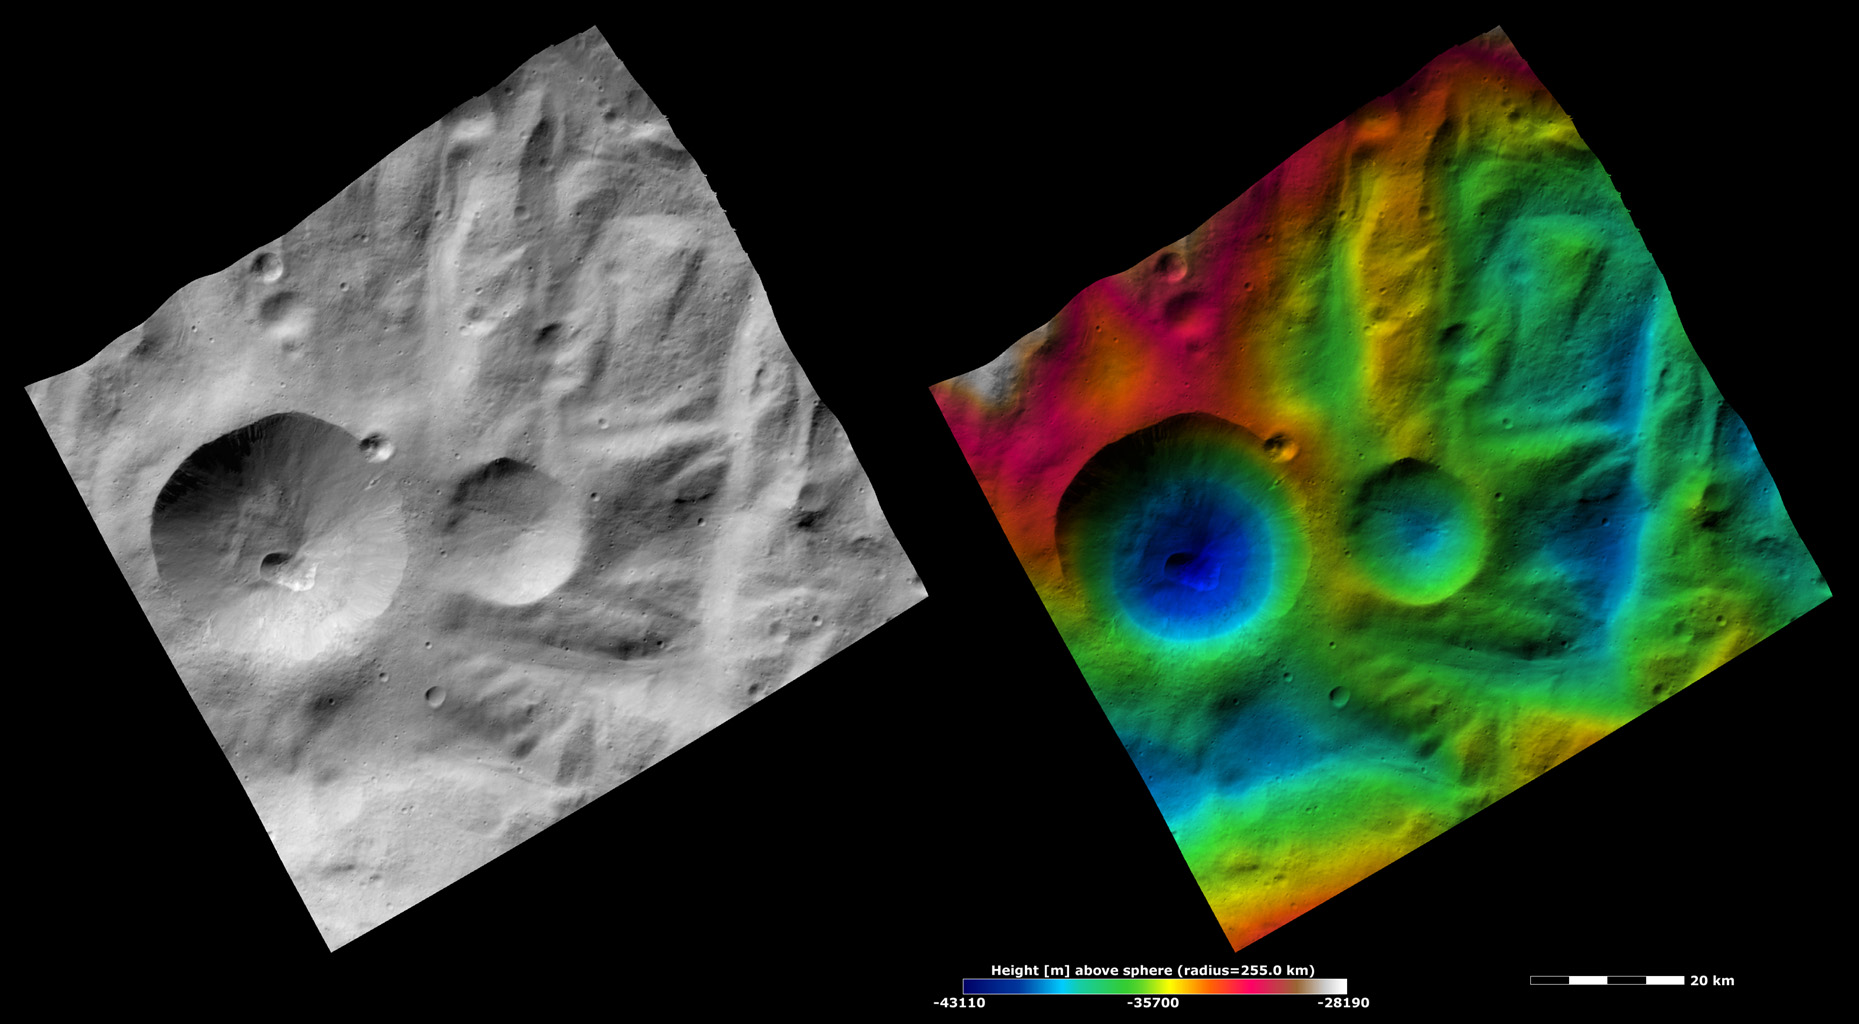 These images are located in Vesta's Rheasilvia quadrangle, near asteroid Vesta's south pole. NASA's Dawn spacecraft obtained the apparent brightness image with its framing camera on Oct. 22, 2011.